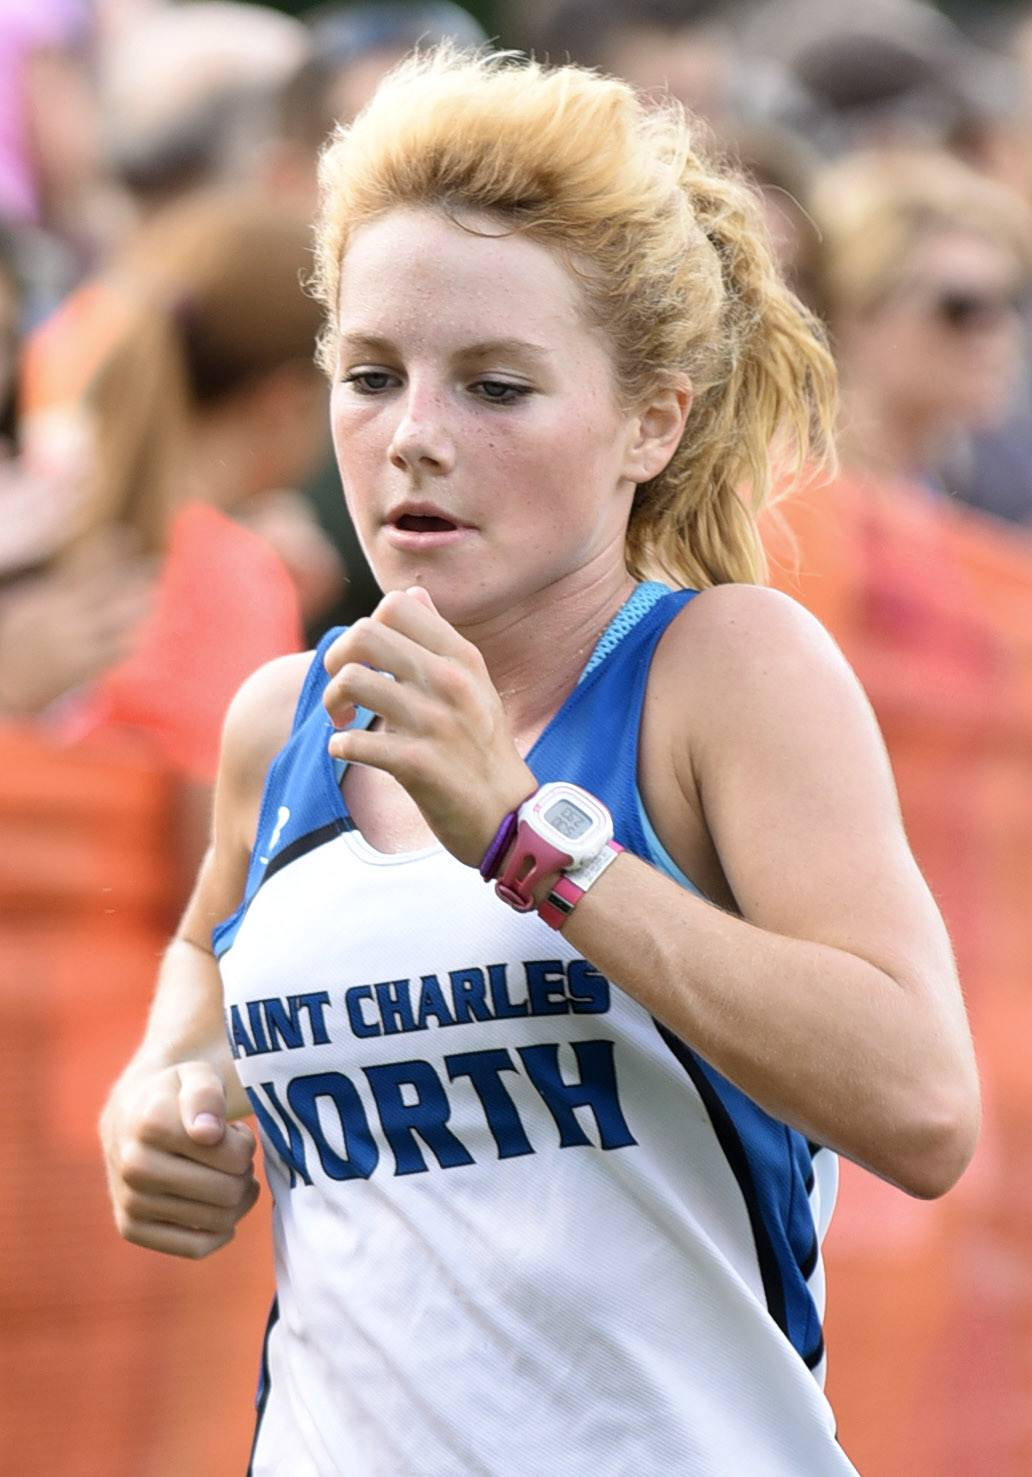 Laura Stoecker/lstoecker@dailyherald.comSt. Charles North's Audrey Ernst nears the finish line to take fourth place in the girls varsity run in the St. Charles East Leavey Invitational at LeRoy Oakes Forest Preserve in St. Charles Saturday.